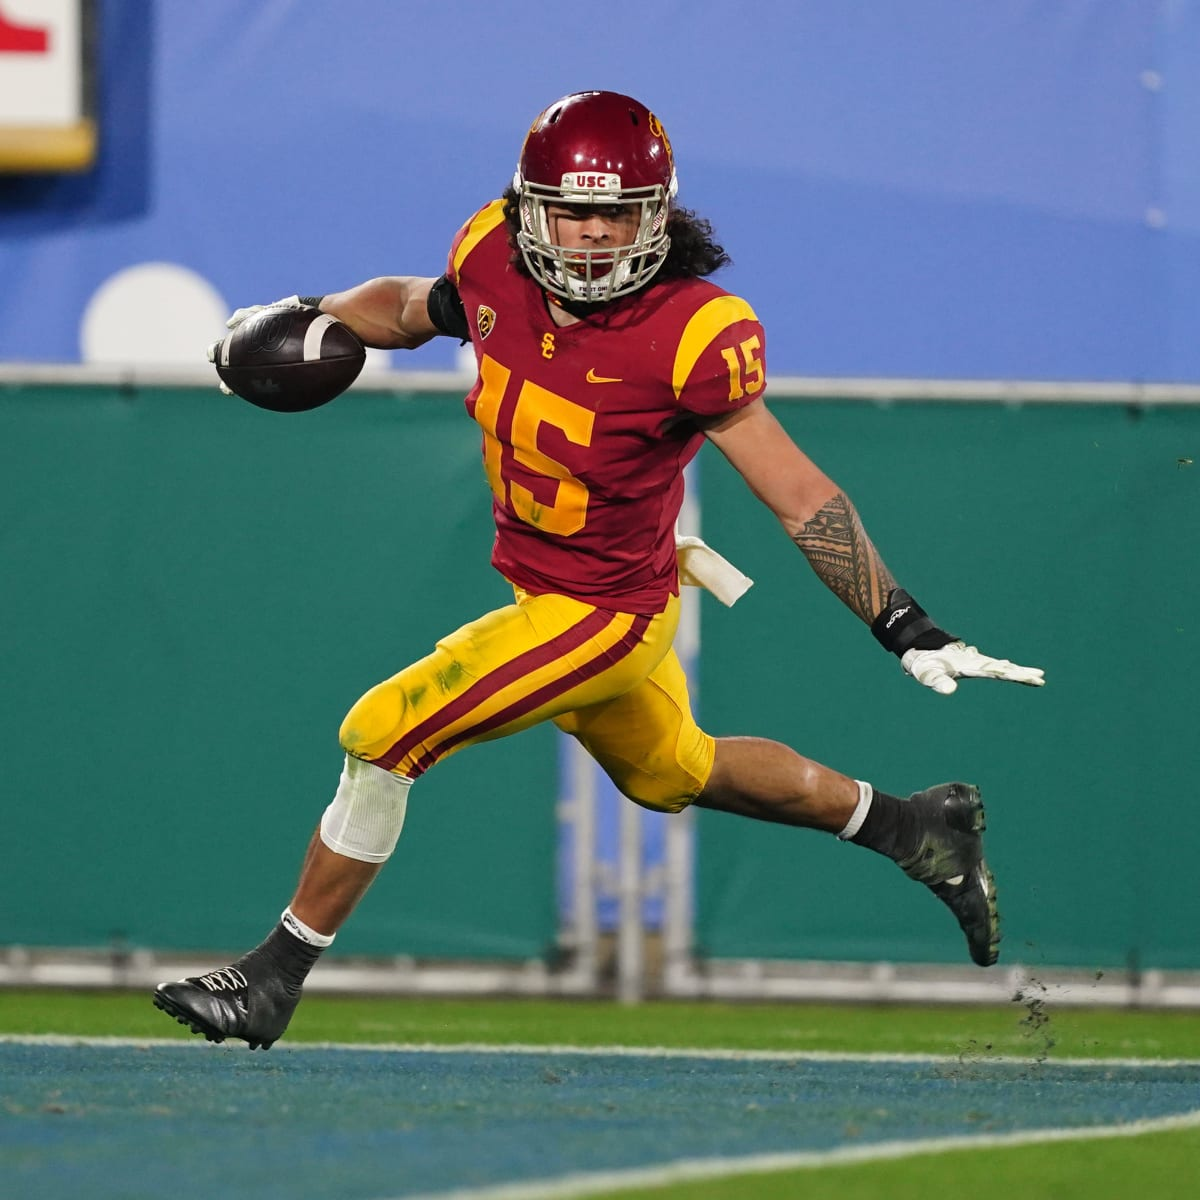 Talanoa Hufanga Becomes Only USC Player To Grace The AP All American List -  Sports Illustrated USC Trojans News, Analysis and More